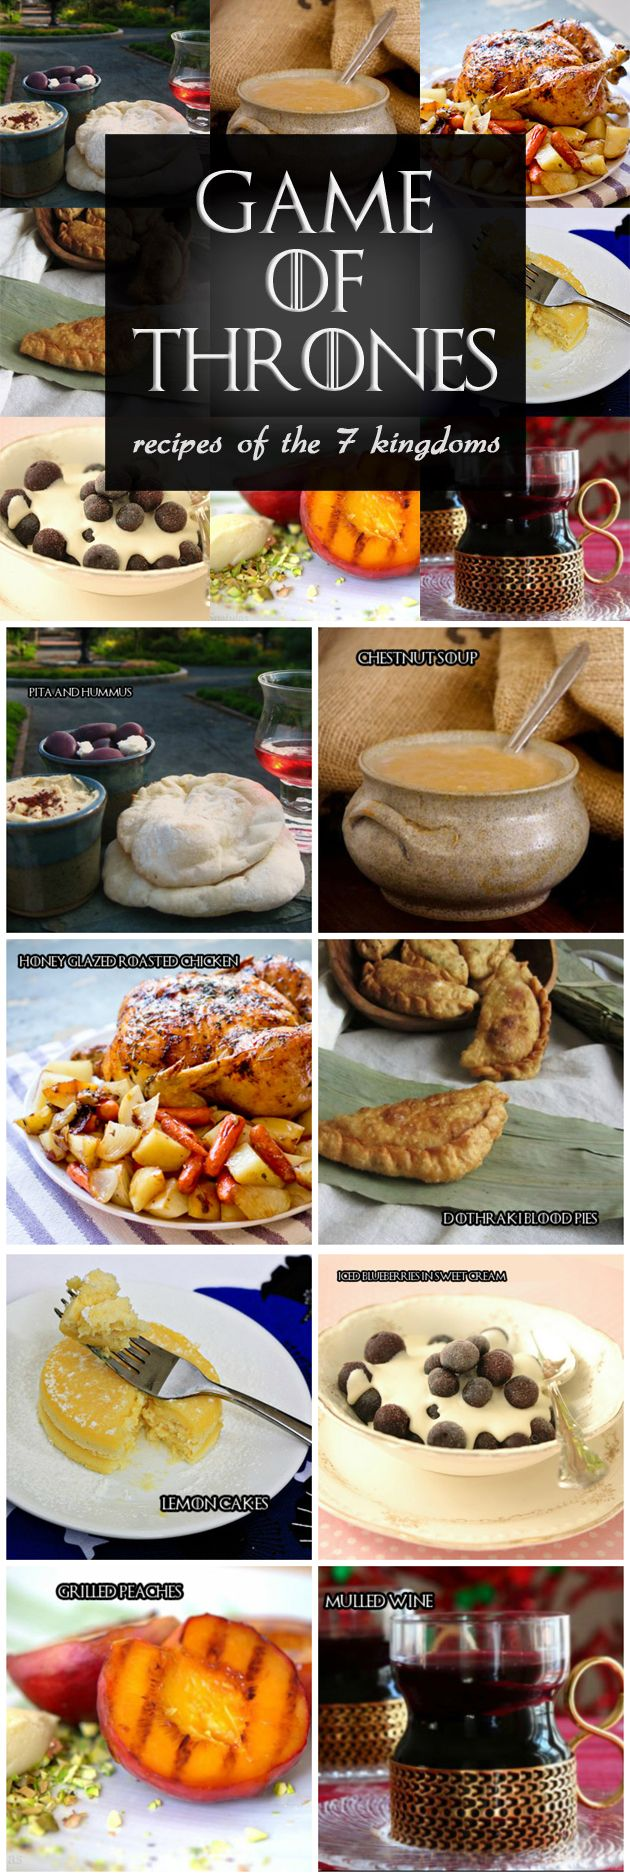 Game of Thrones: Recipes of the Seven Kingdoms. Some great ideas for your GoT Gathering menu.